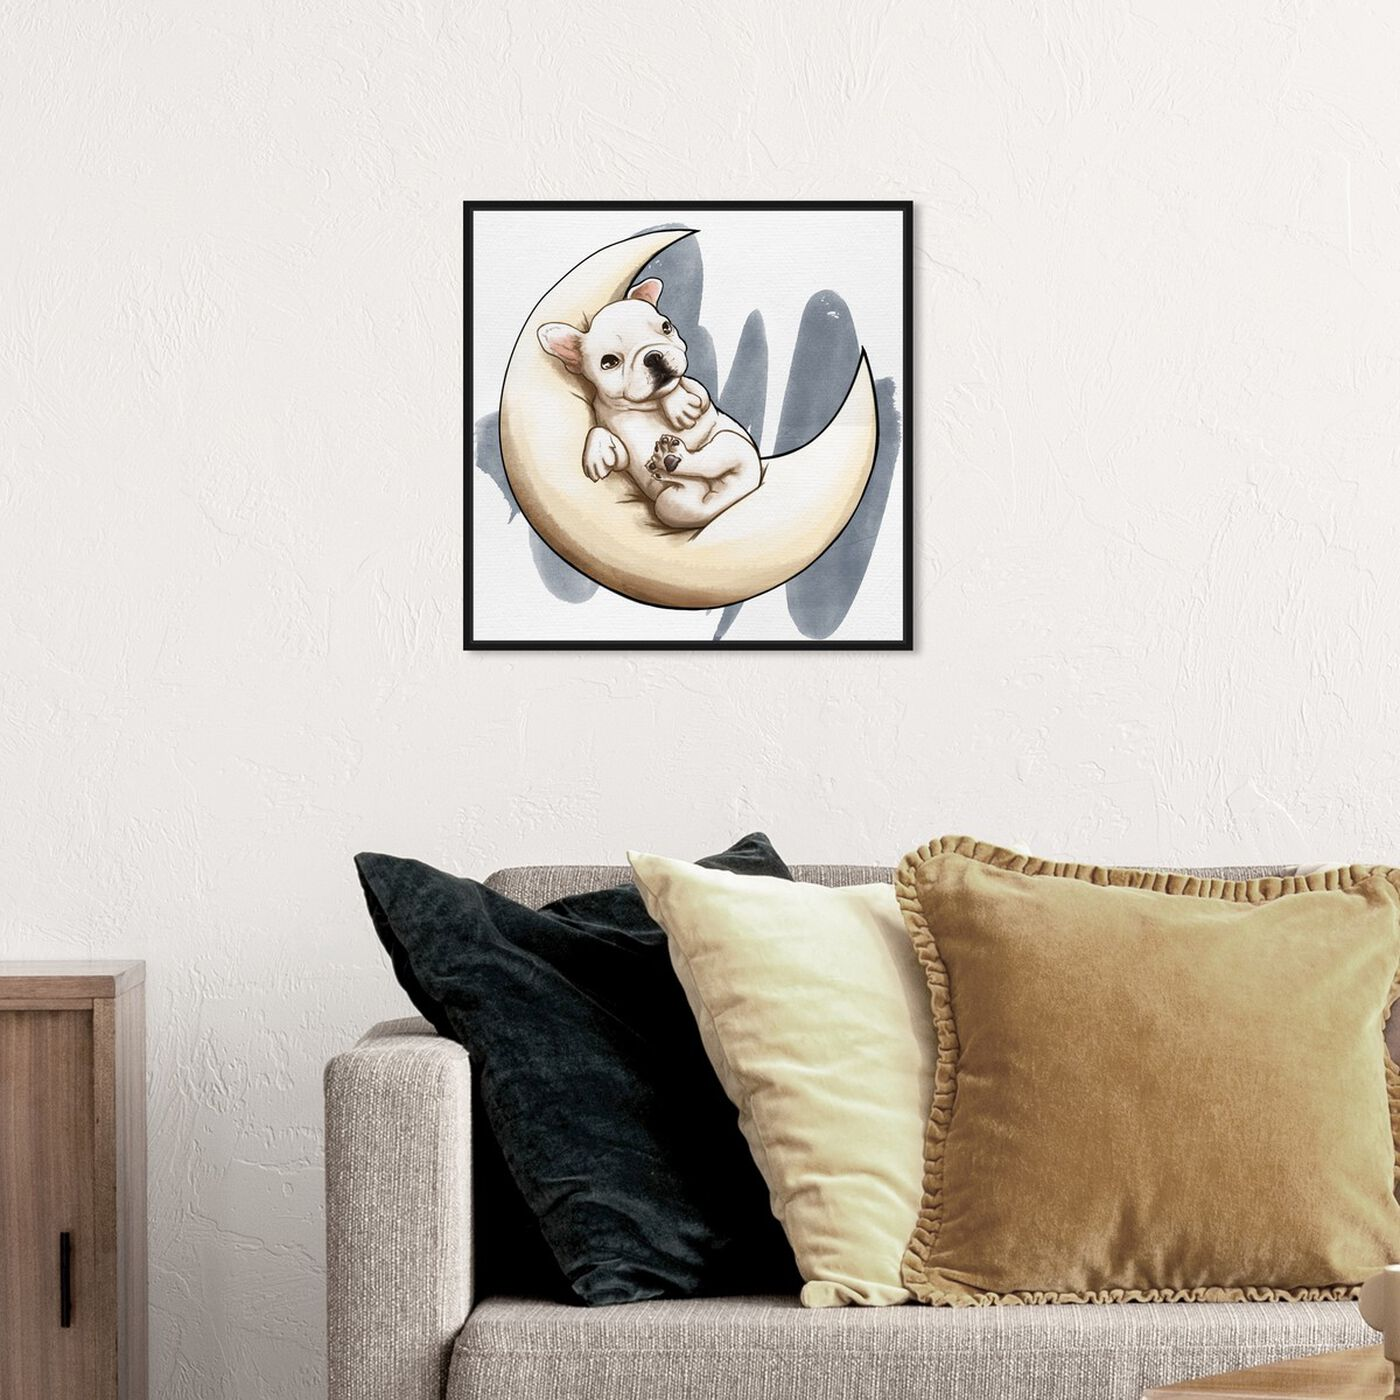 Hanging view of Lunar Frenchie featuring animals and dogs and puppies art.